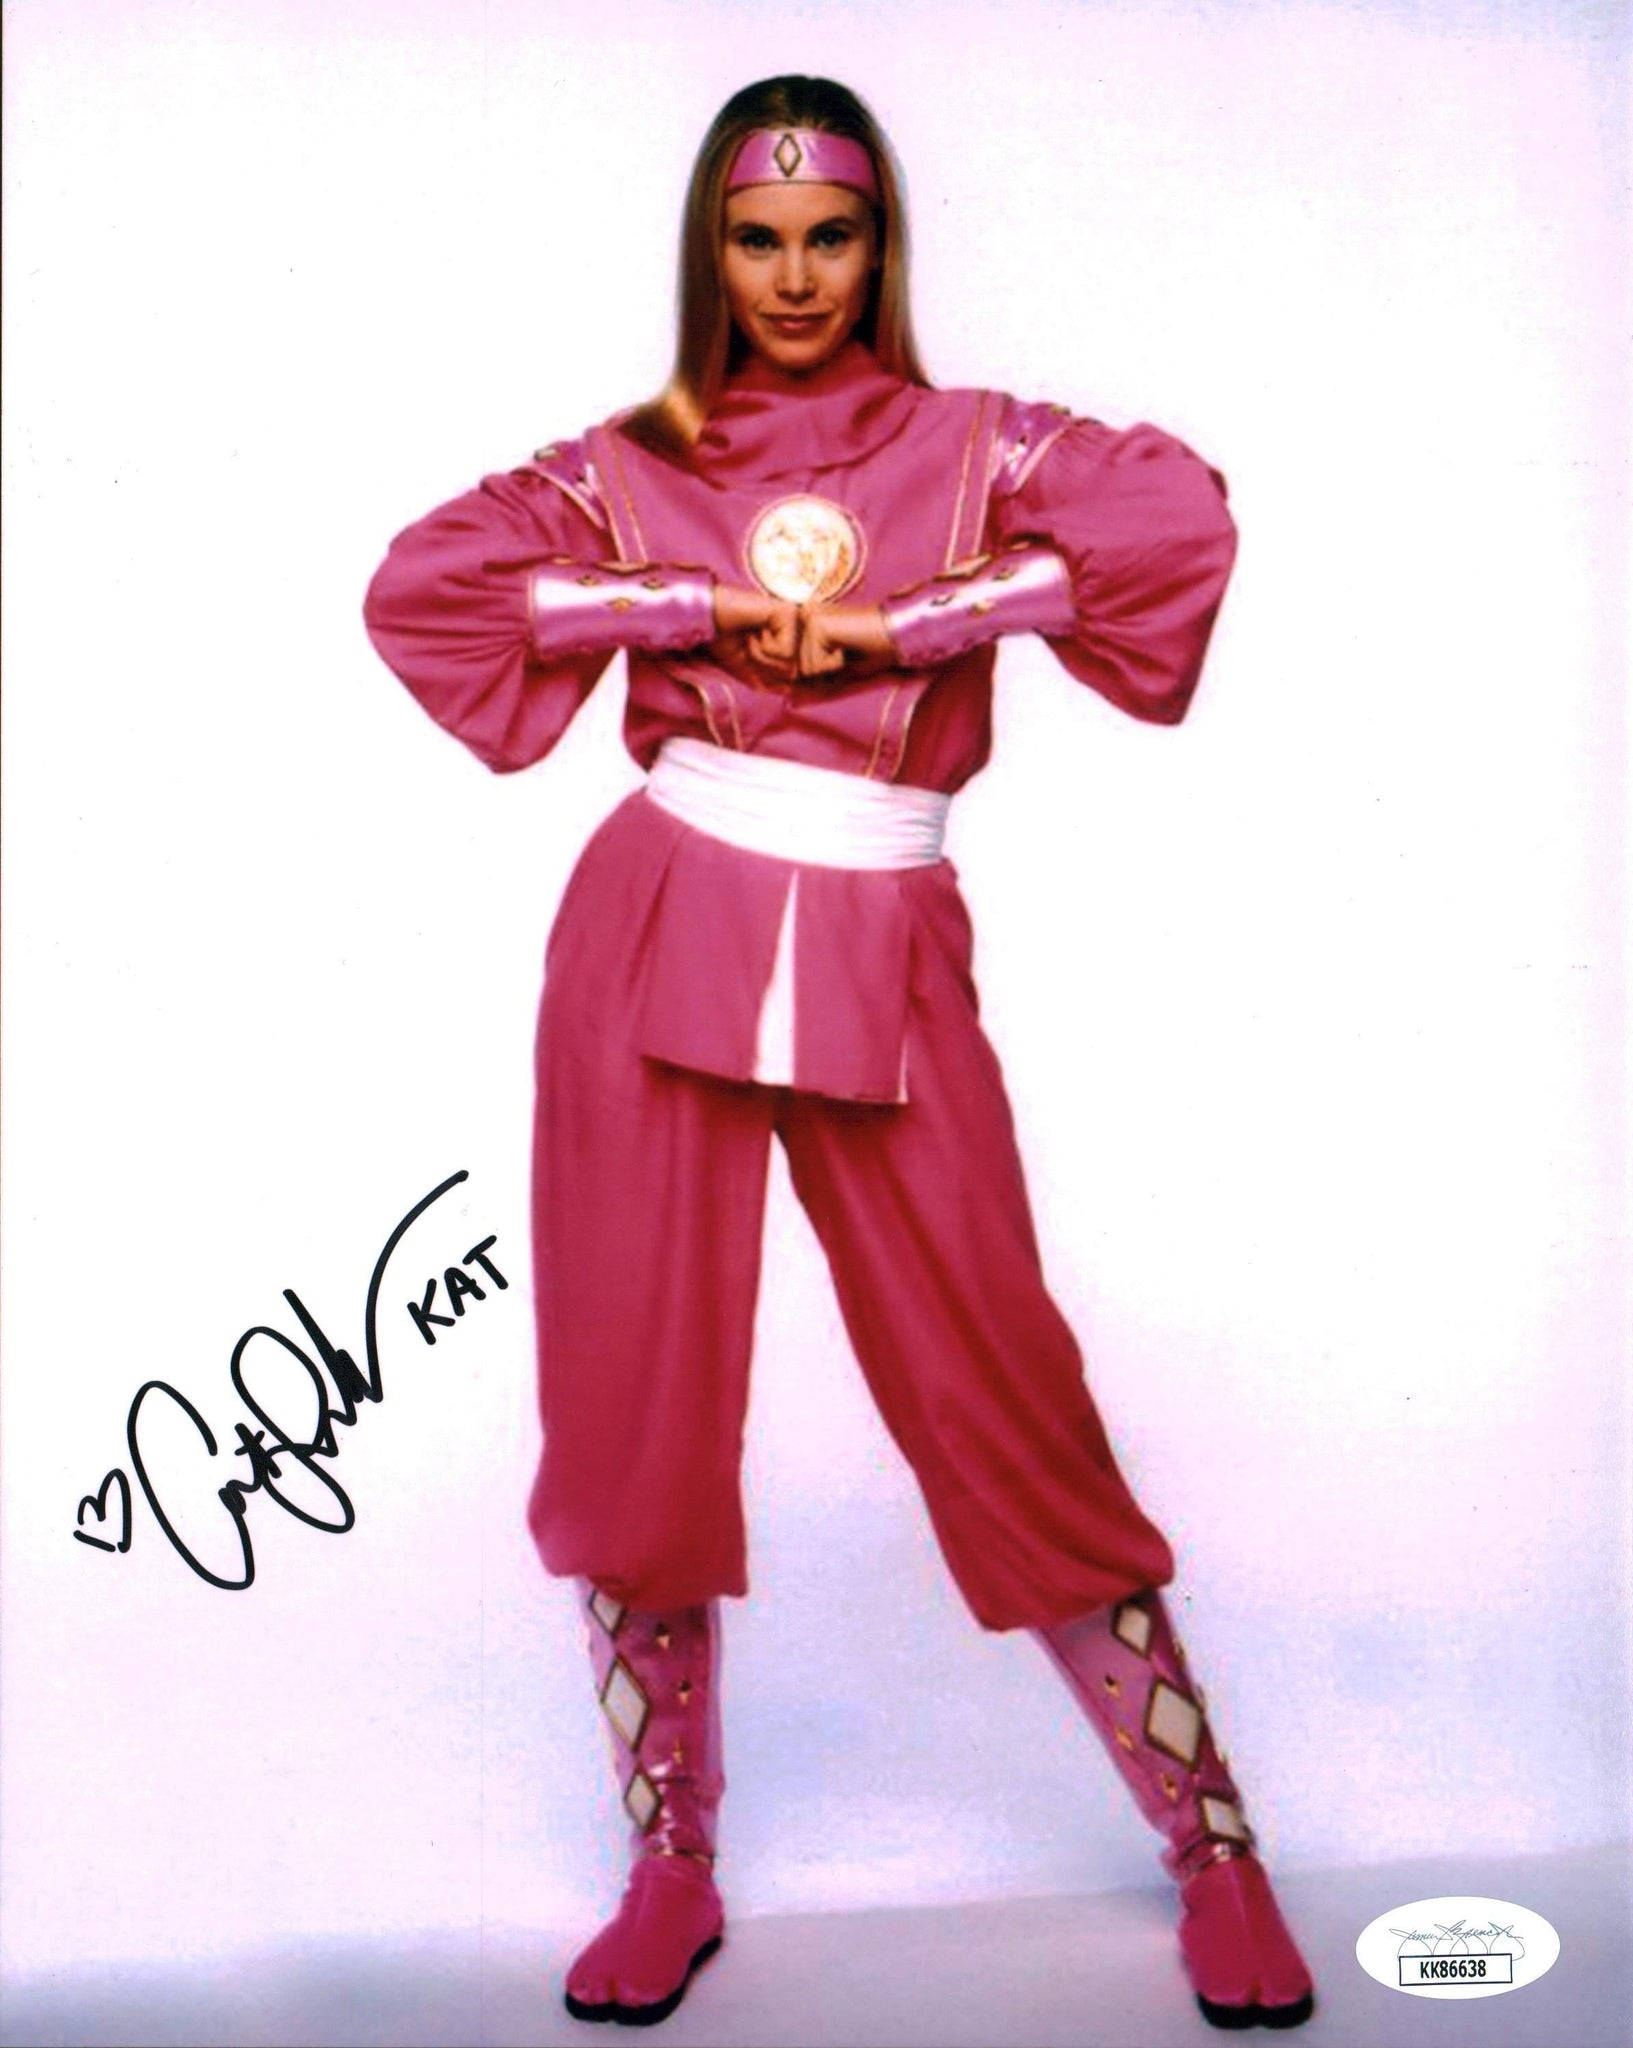 Catherine Sutherland Power Rangers 8x10 Photo Signed Autographed JSA Certified COA GalaxyCon